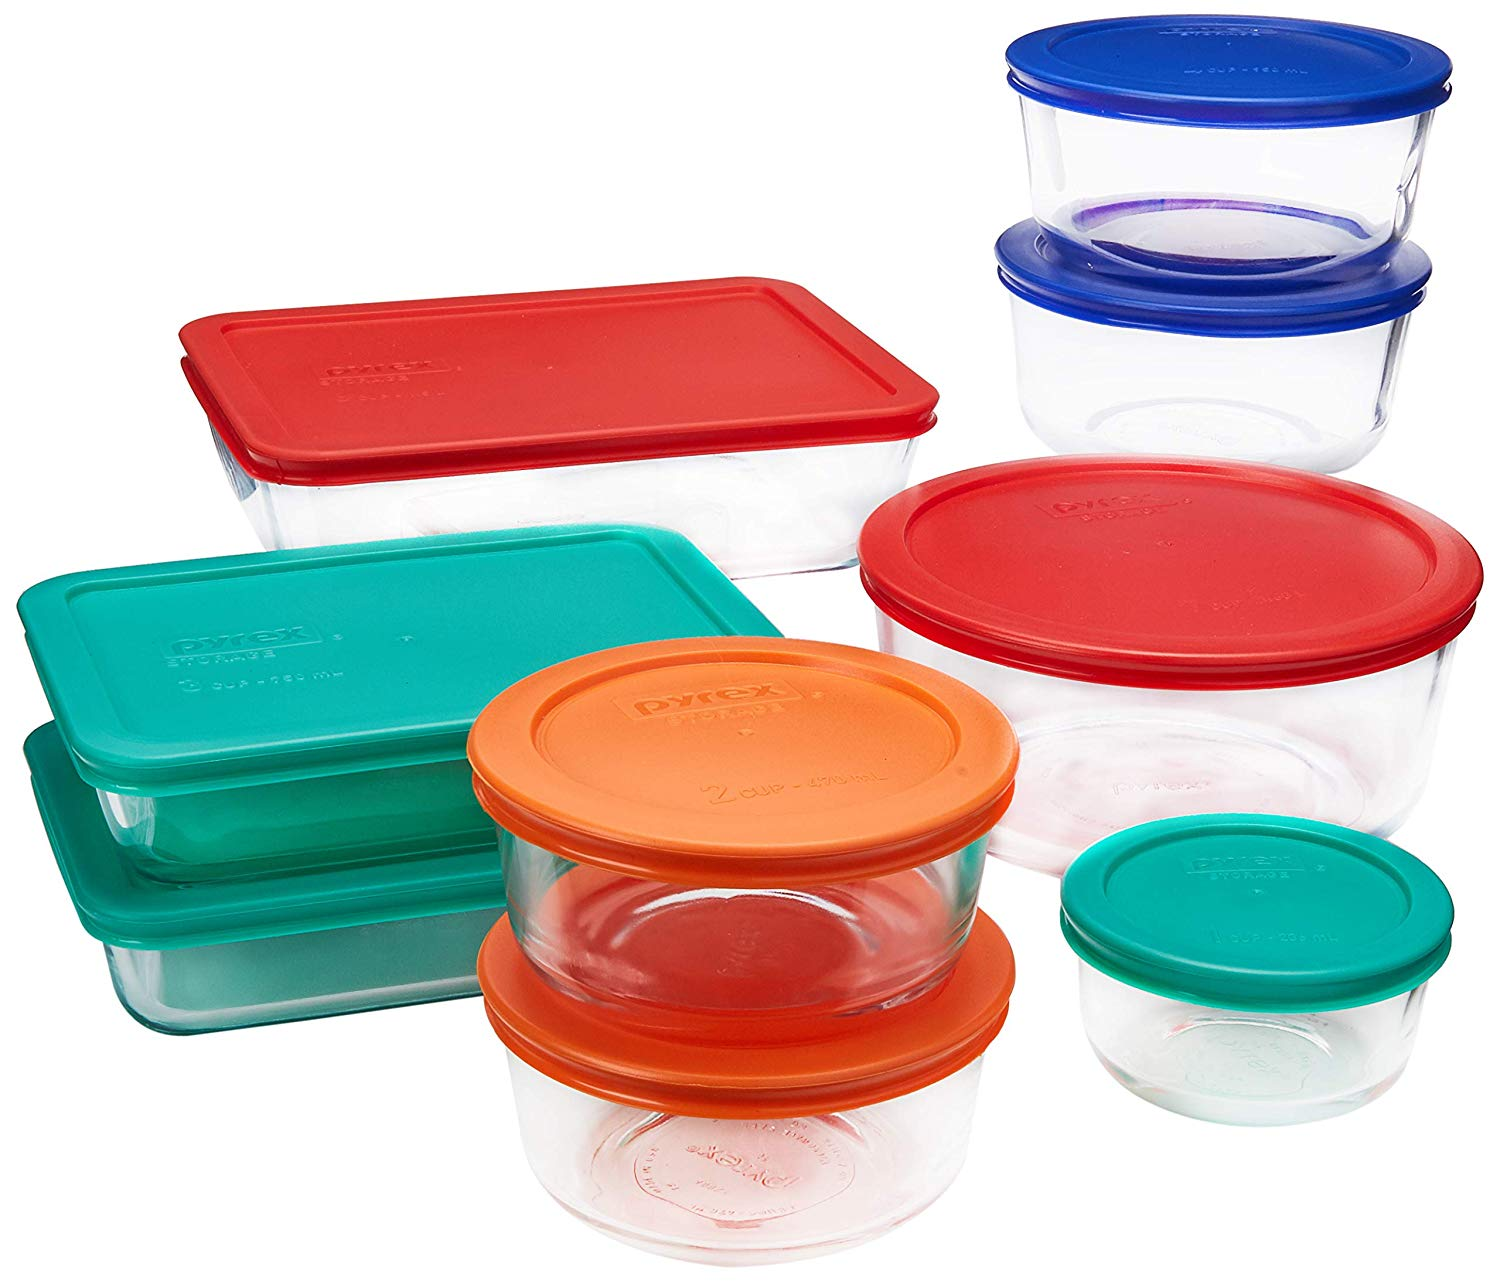 items for your kitchen food storage containers